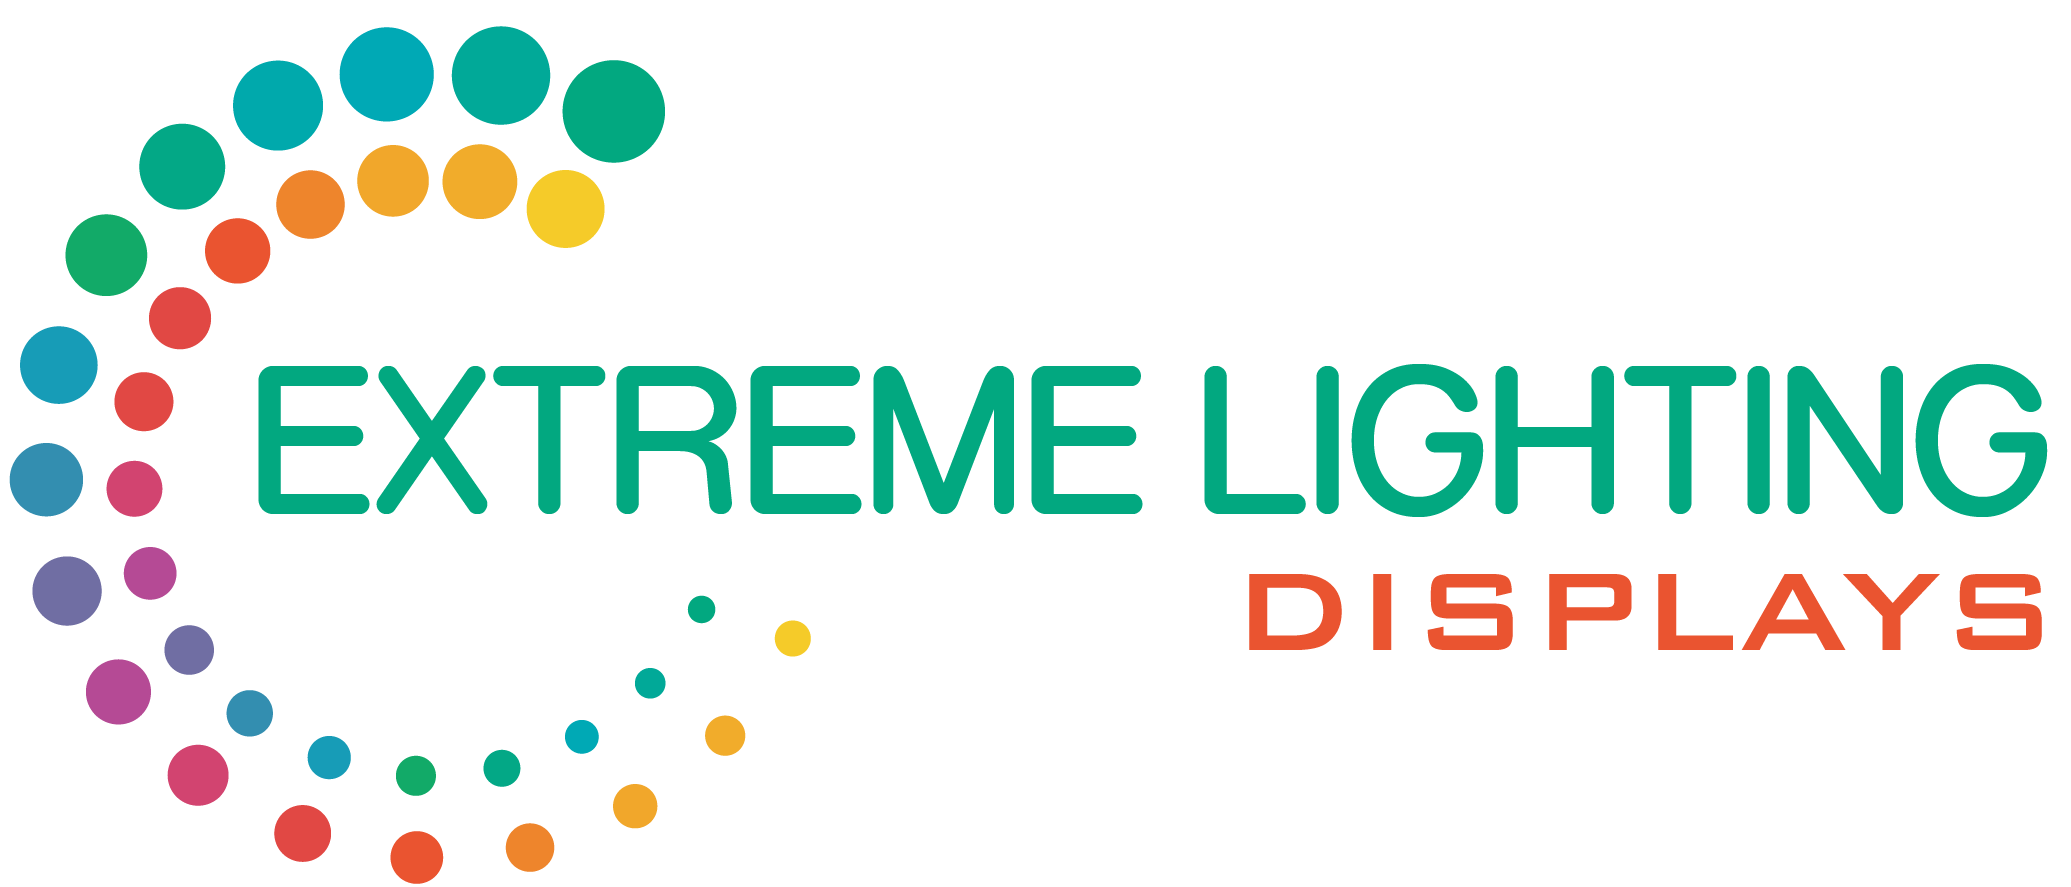 Extreme Lighting Displays